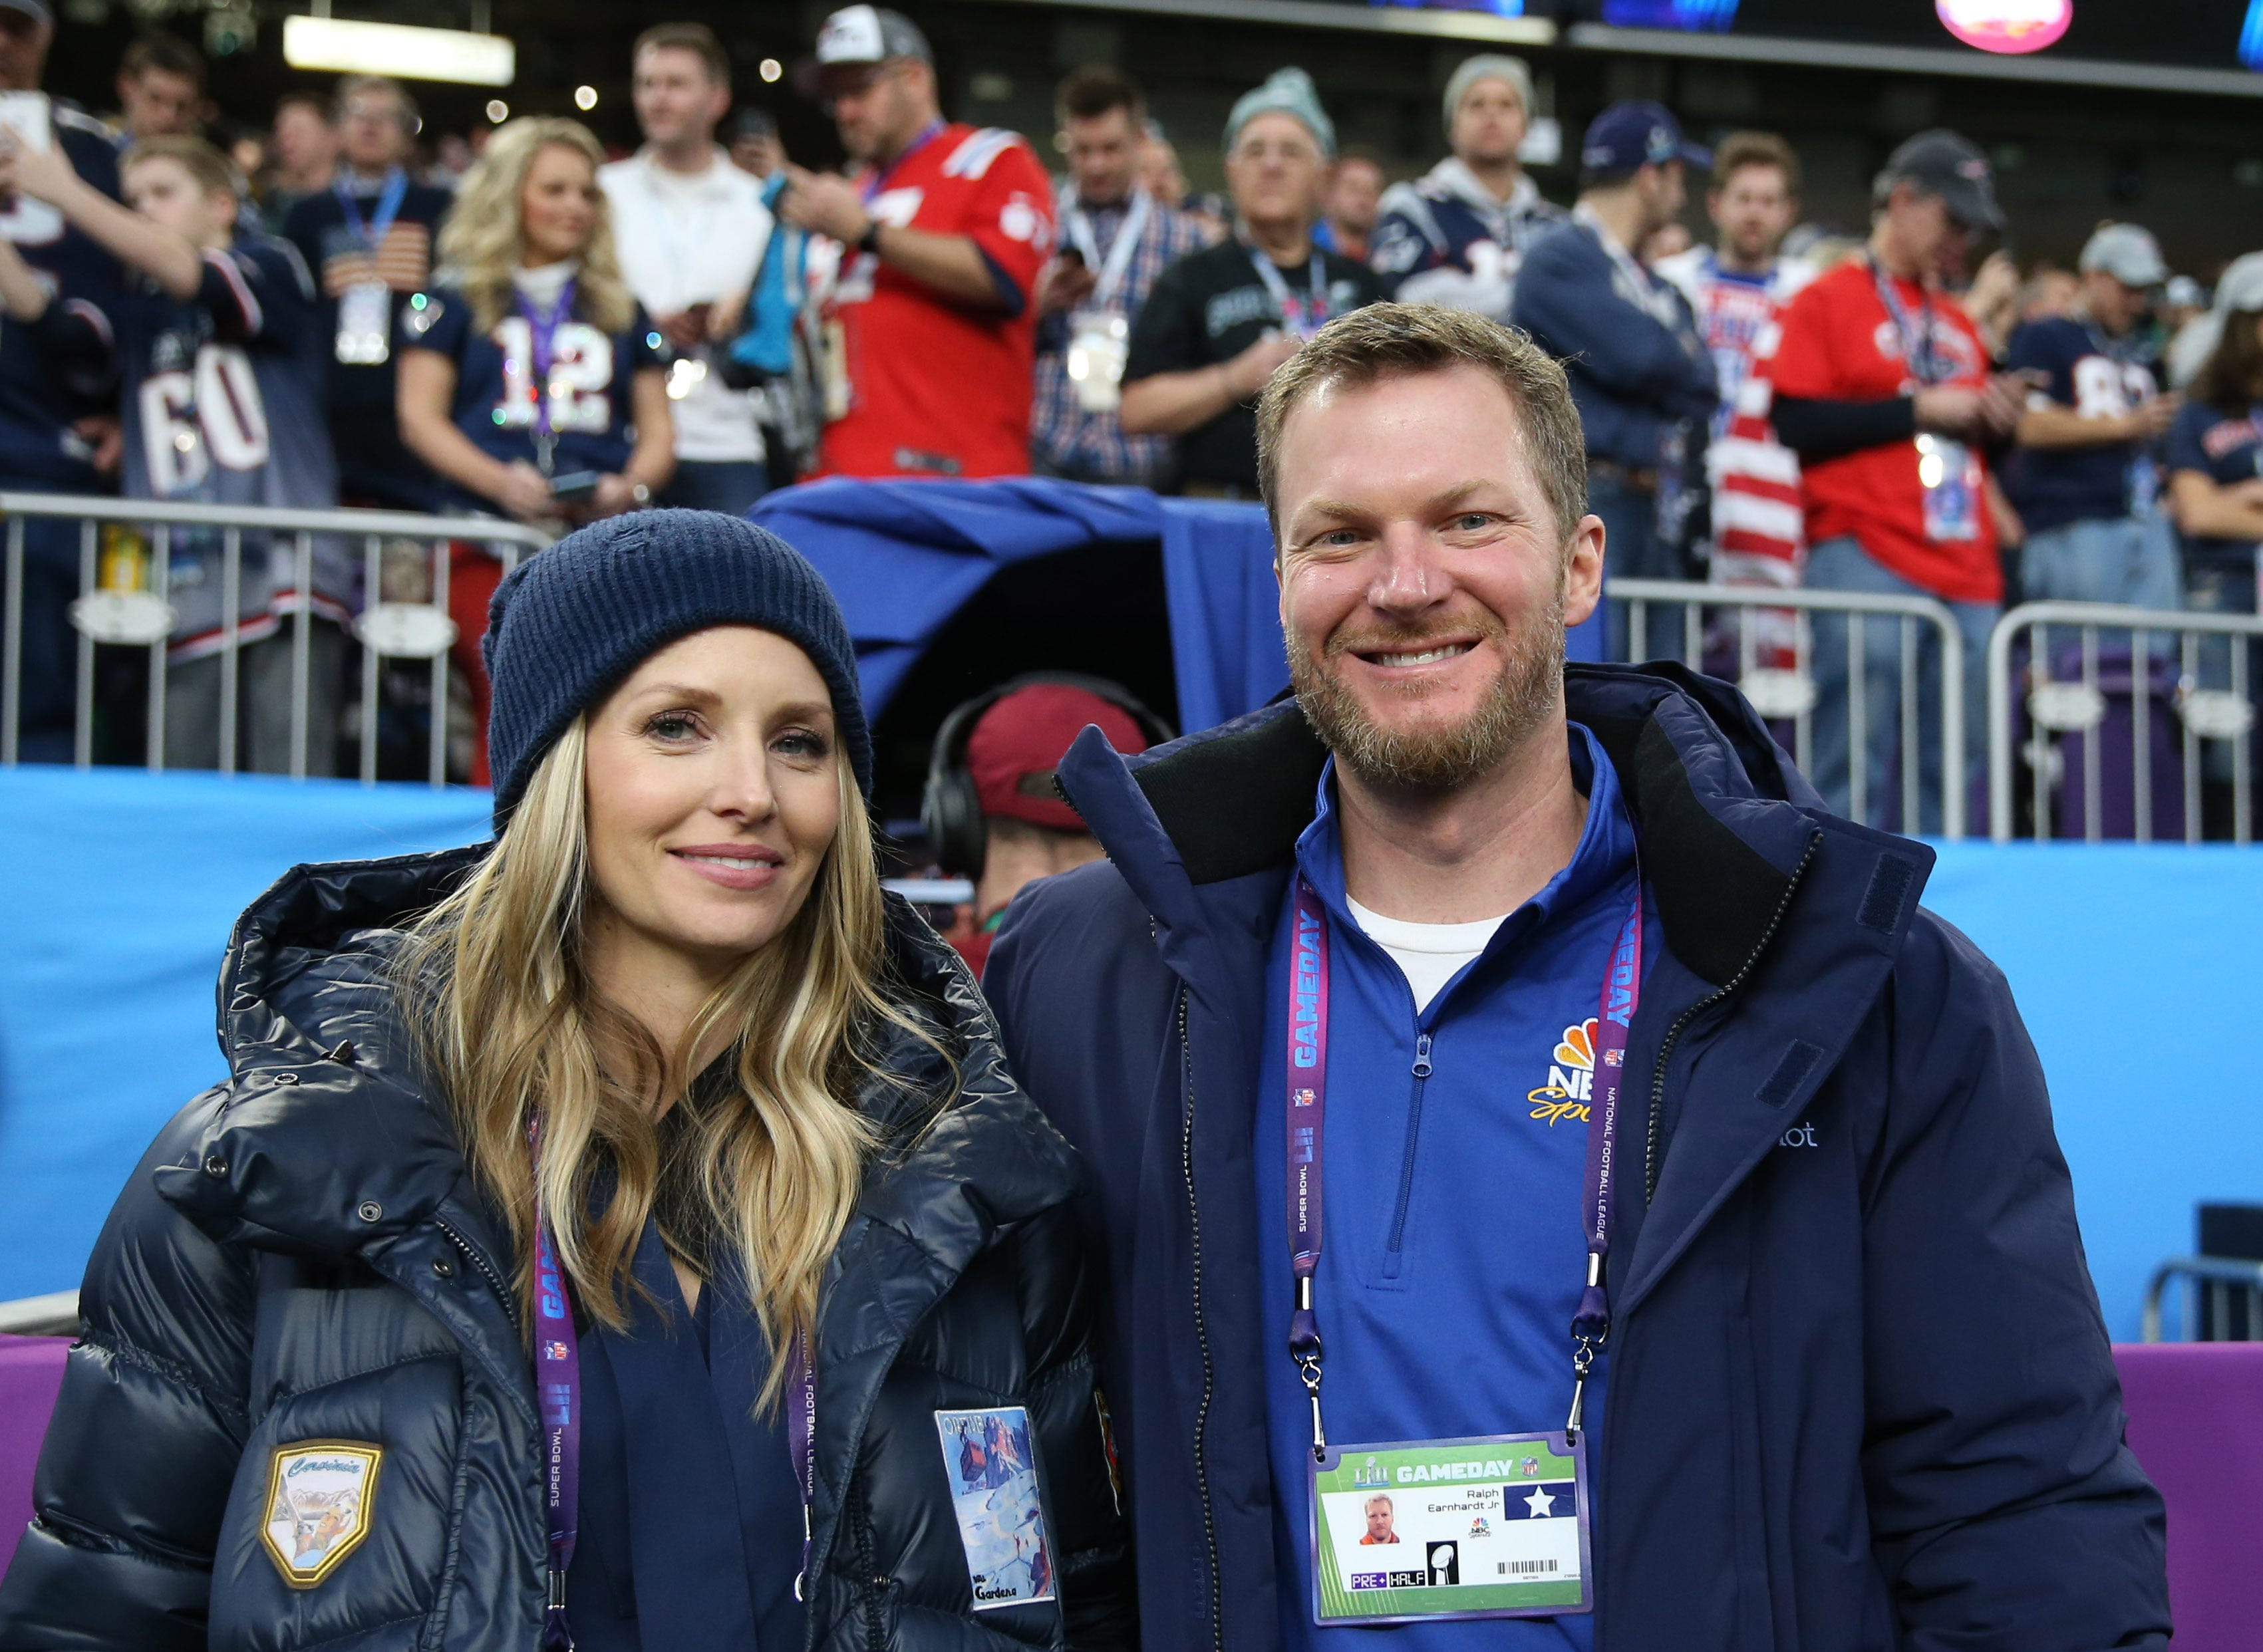 Dale Earnhardt Jr How Fatherhood Has Changed Him I Was Selfish When i get where i'm going. dale earnhardt jr how fatherhood has